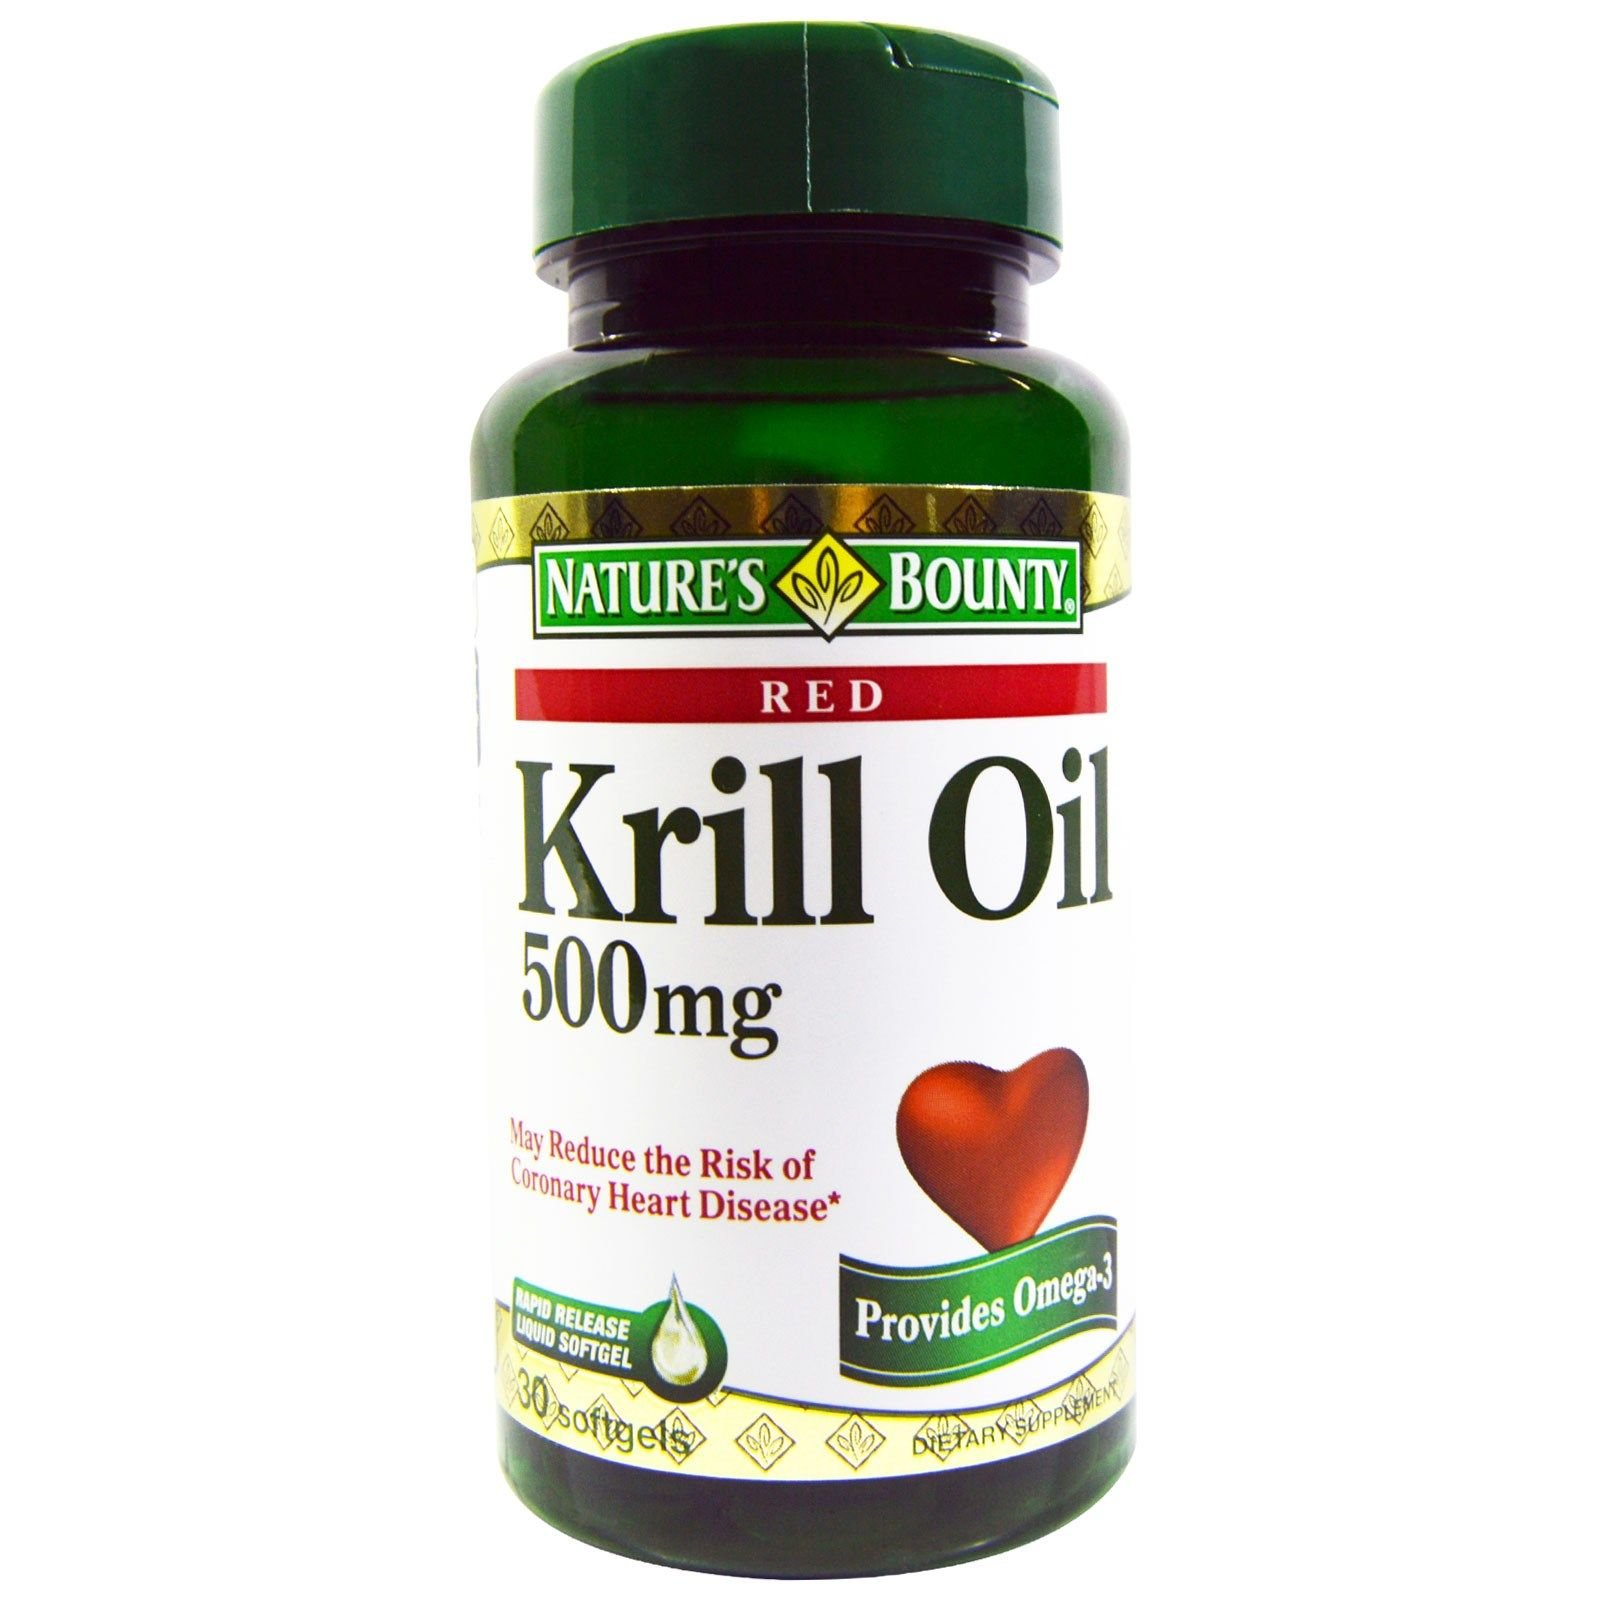 Nature's Bounty Red Krill Oil 500 mg Dietary Supplement Softgels 30 Soft Gels (Pack of 11)